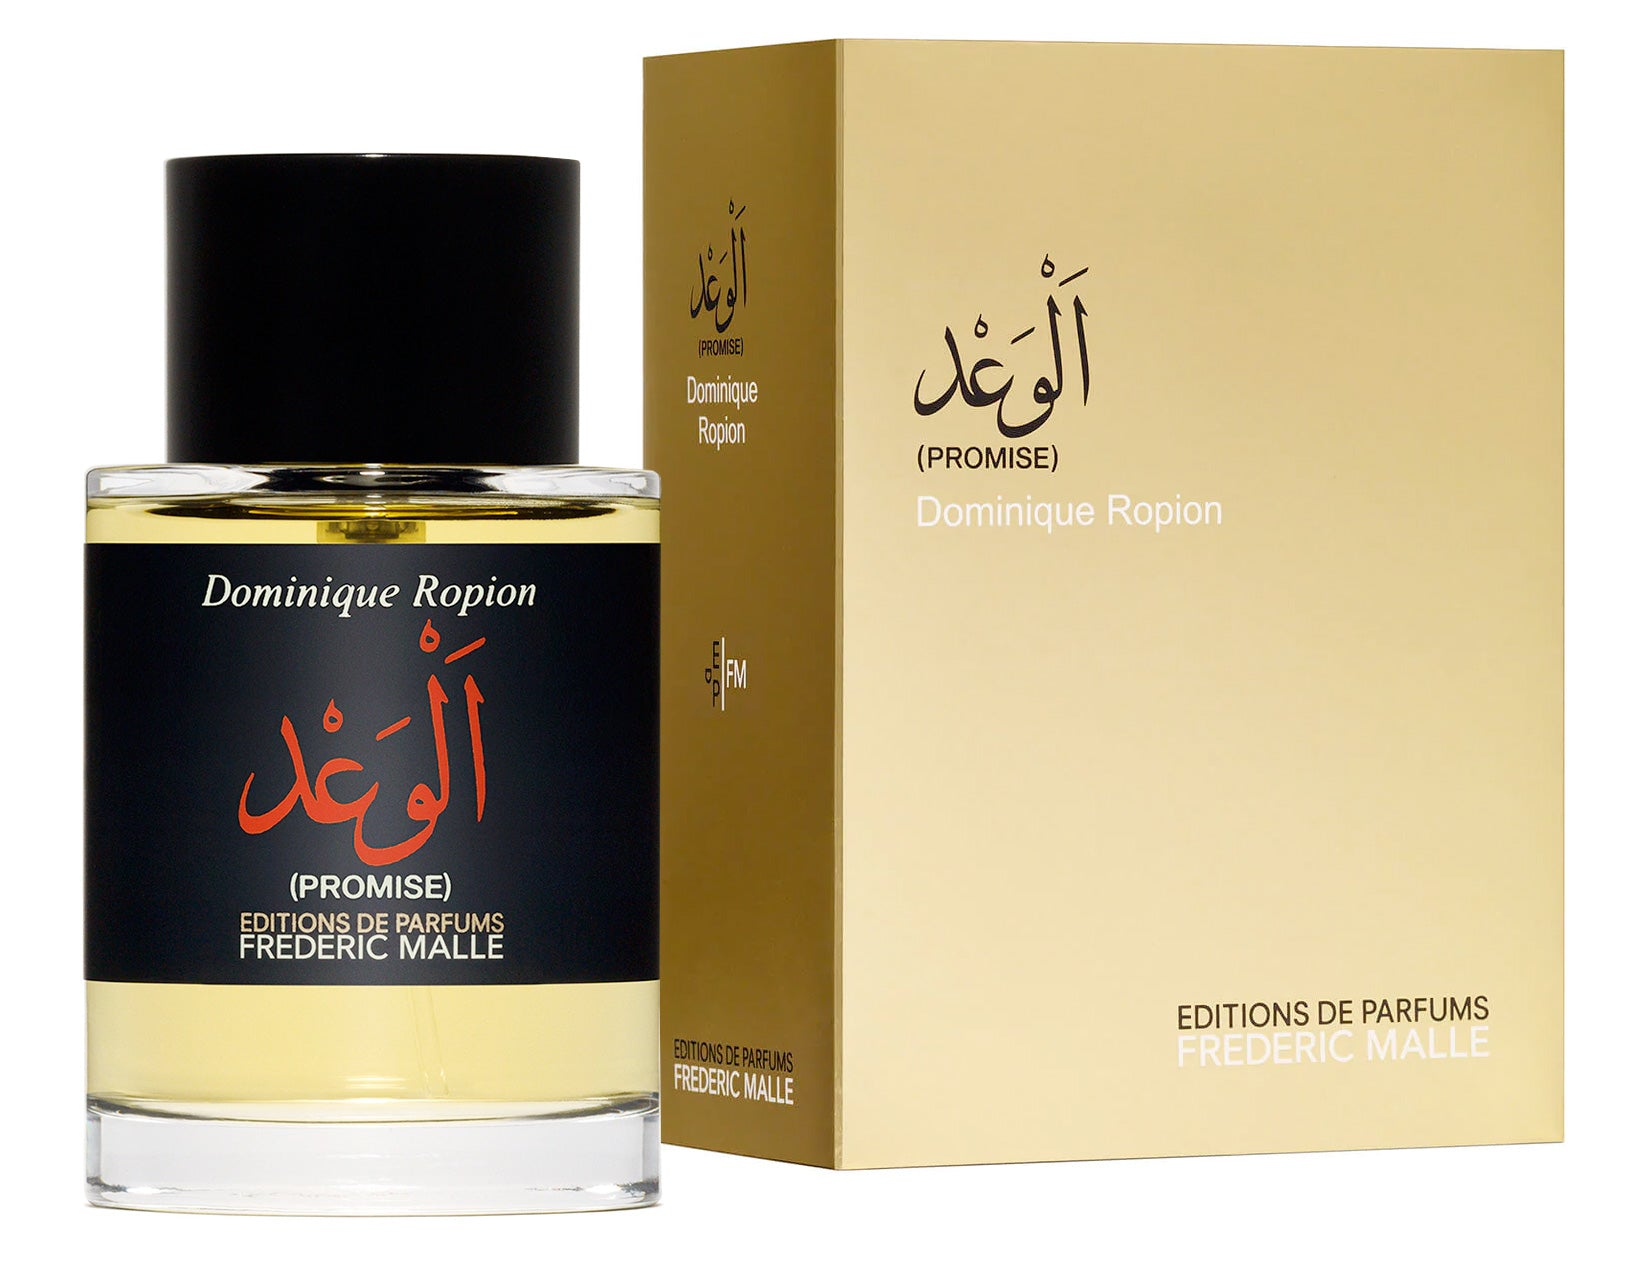 Perfume oil inspired by Promise